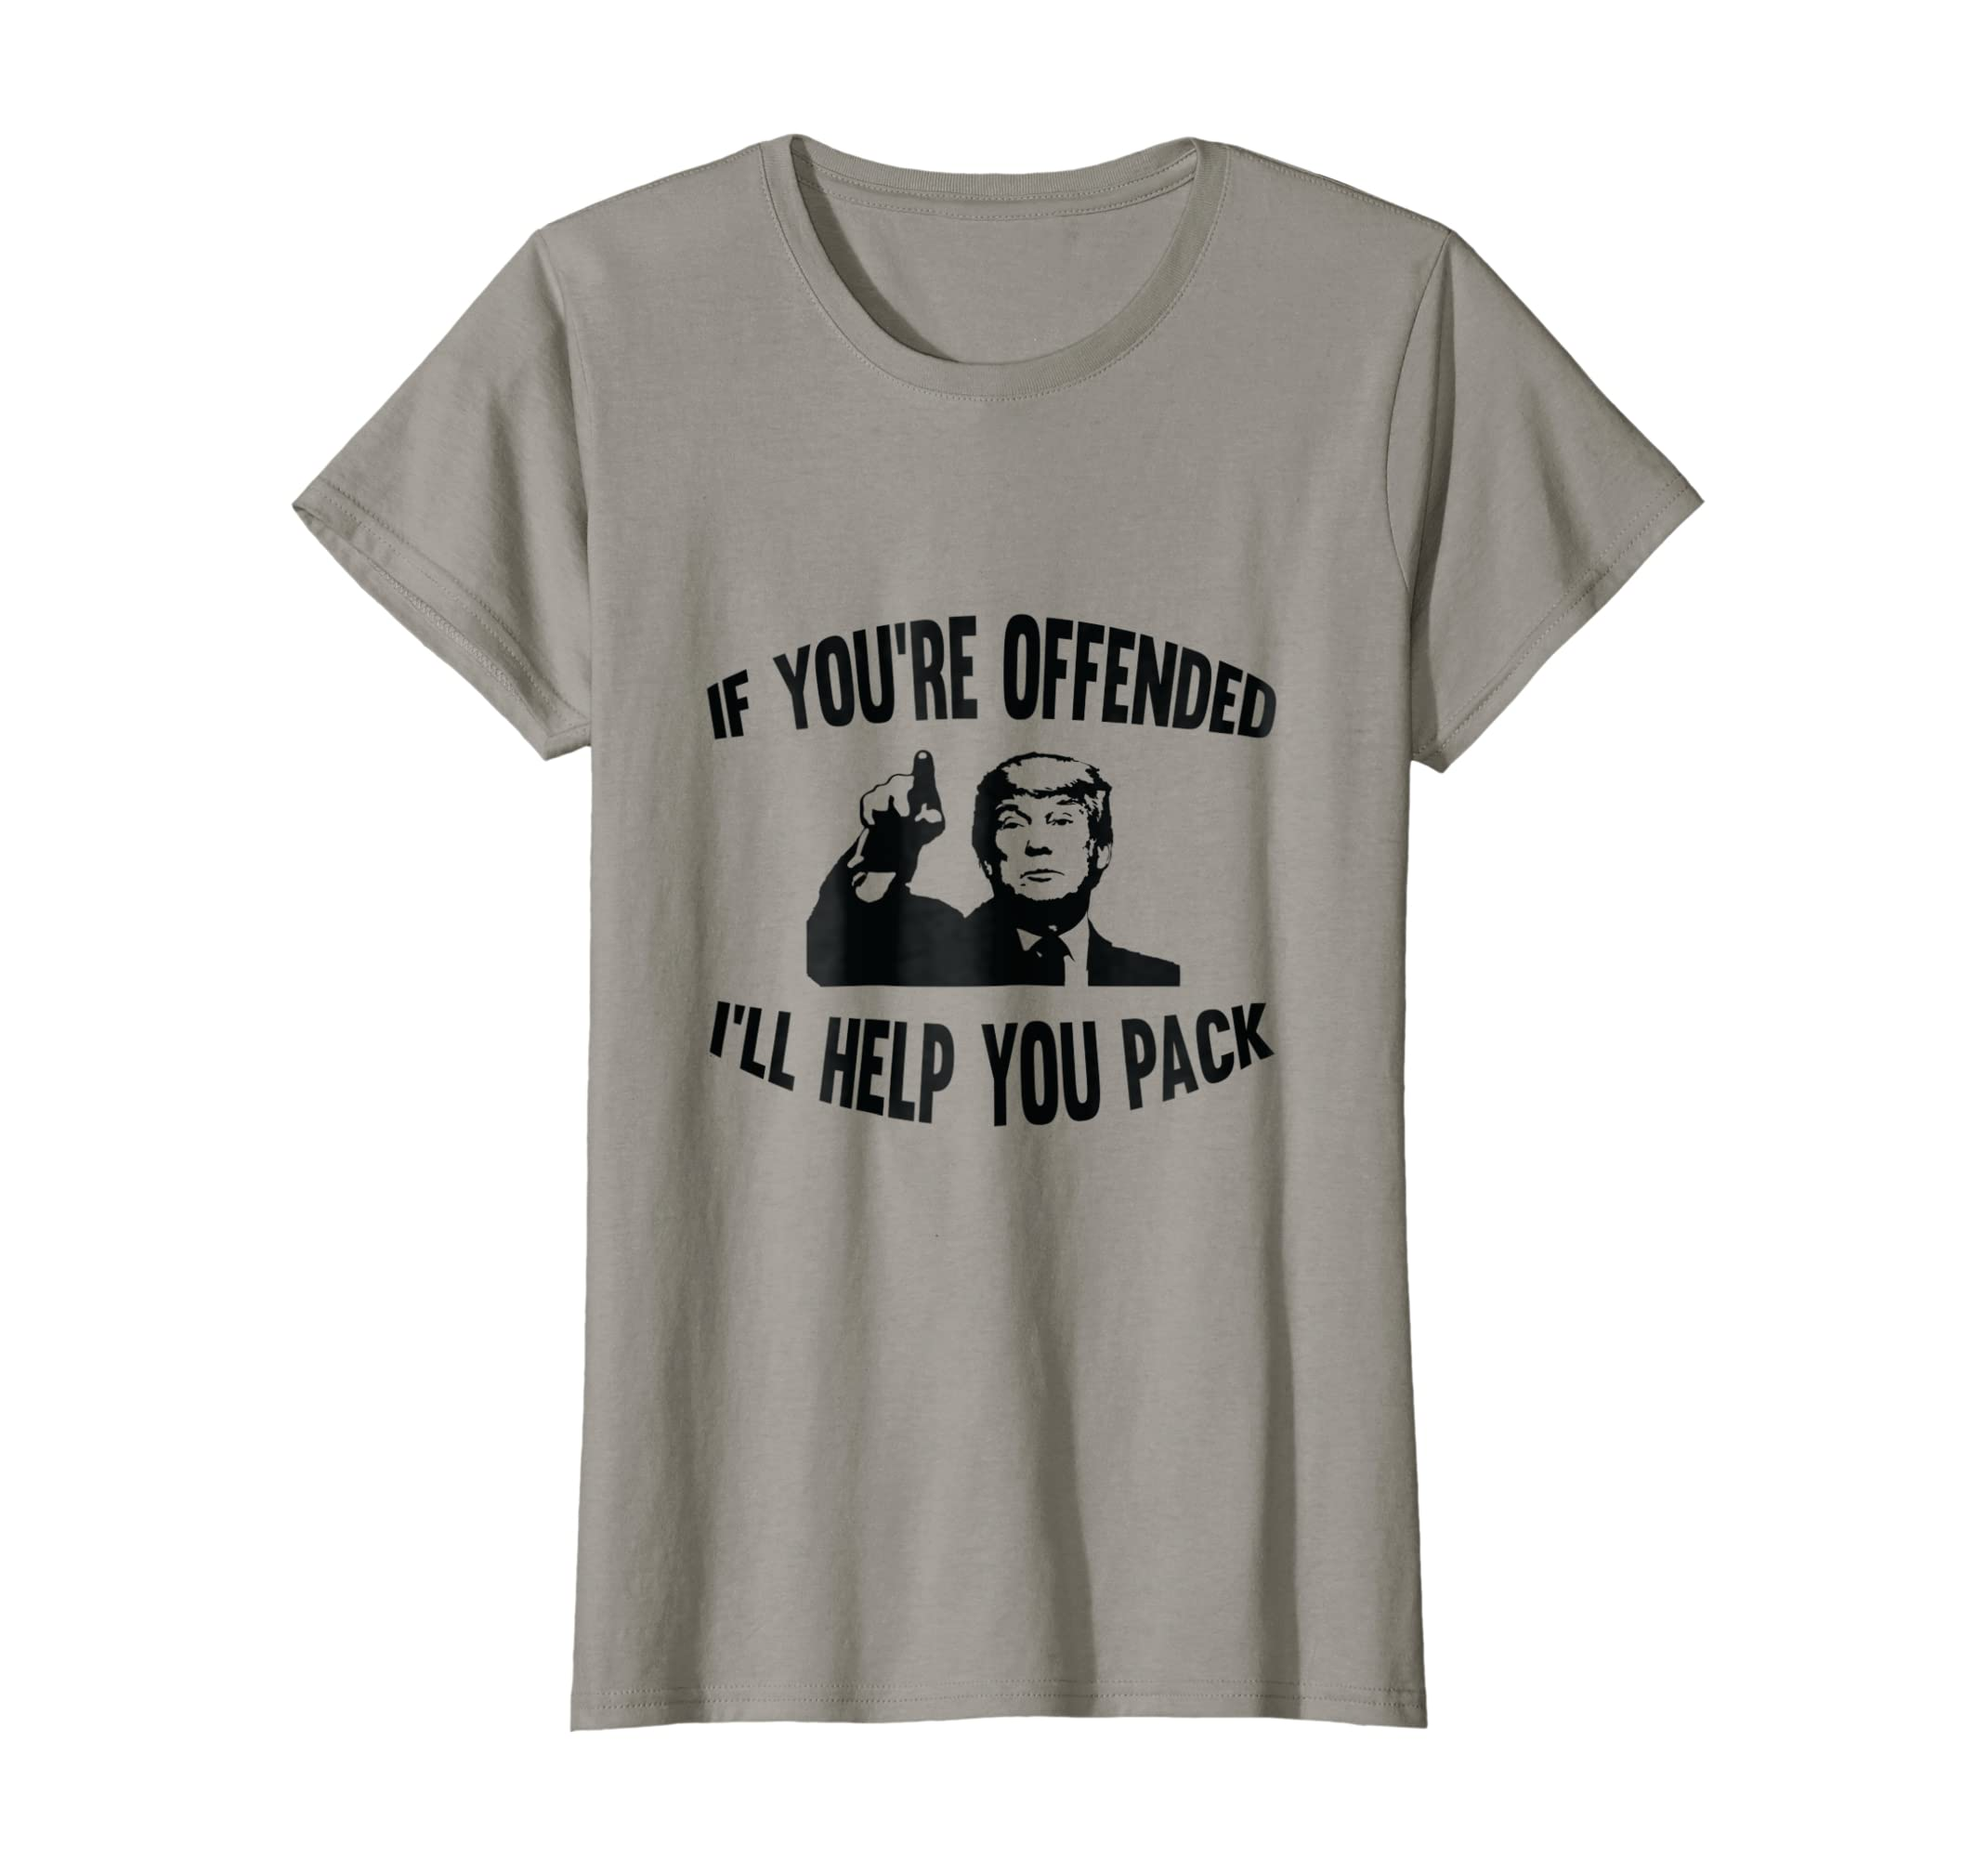 e7a2ad1b Amazon.com: If You're Offended I'll Help You Pack Trump T-Shirt: Clothing